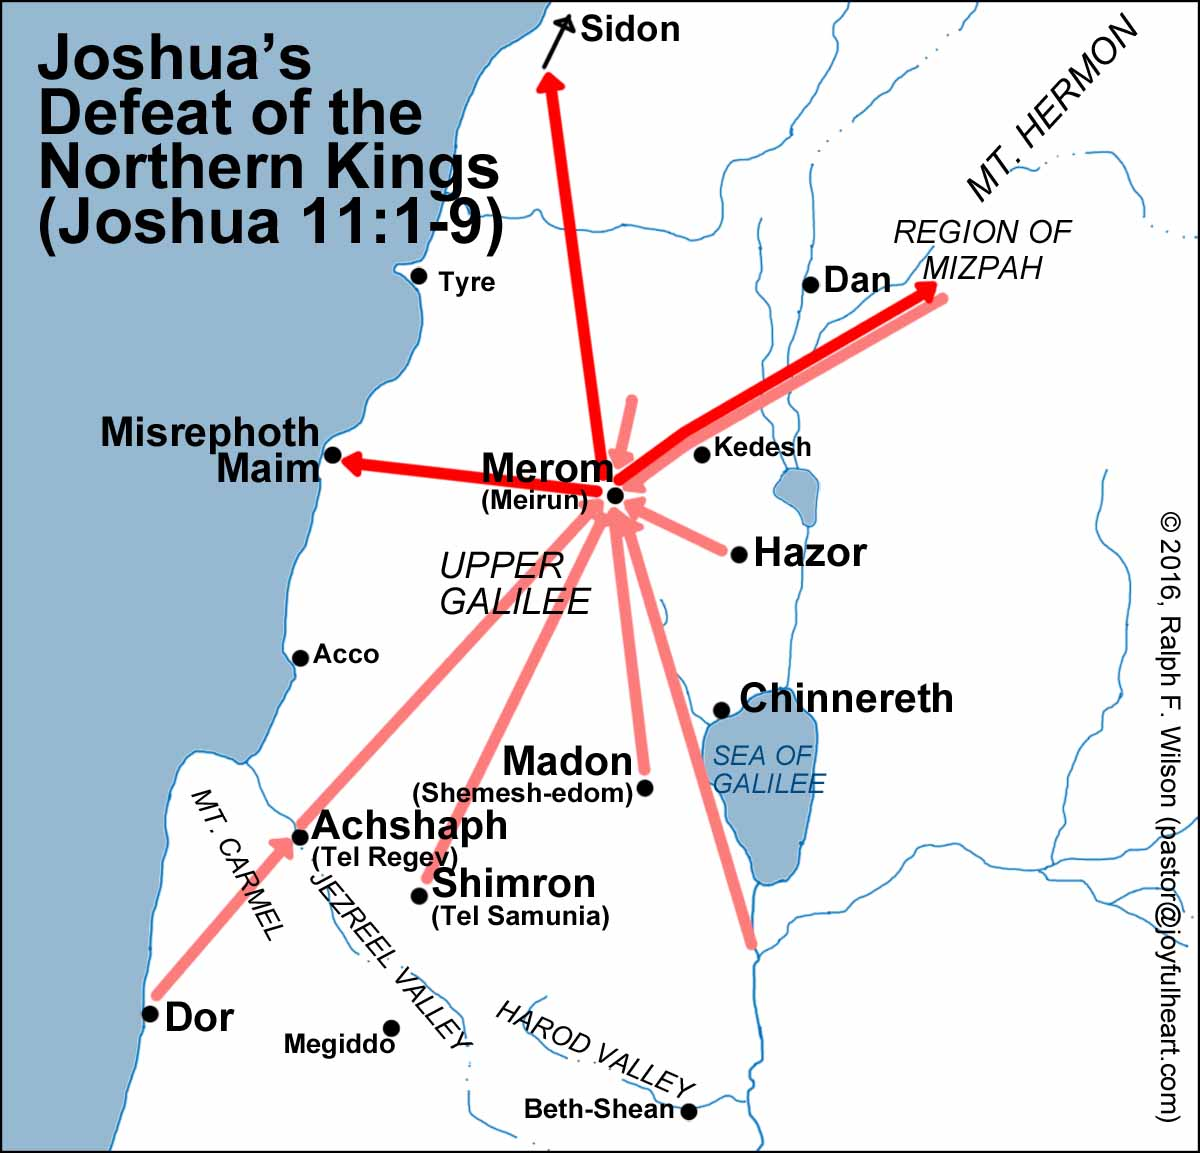 Maps for the book of joshua jesuswalk bible study series smaller joshuas defeat of the northern kings gumiabroncs Image collections